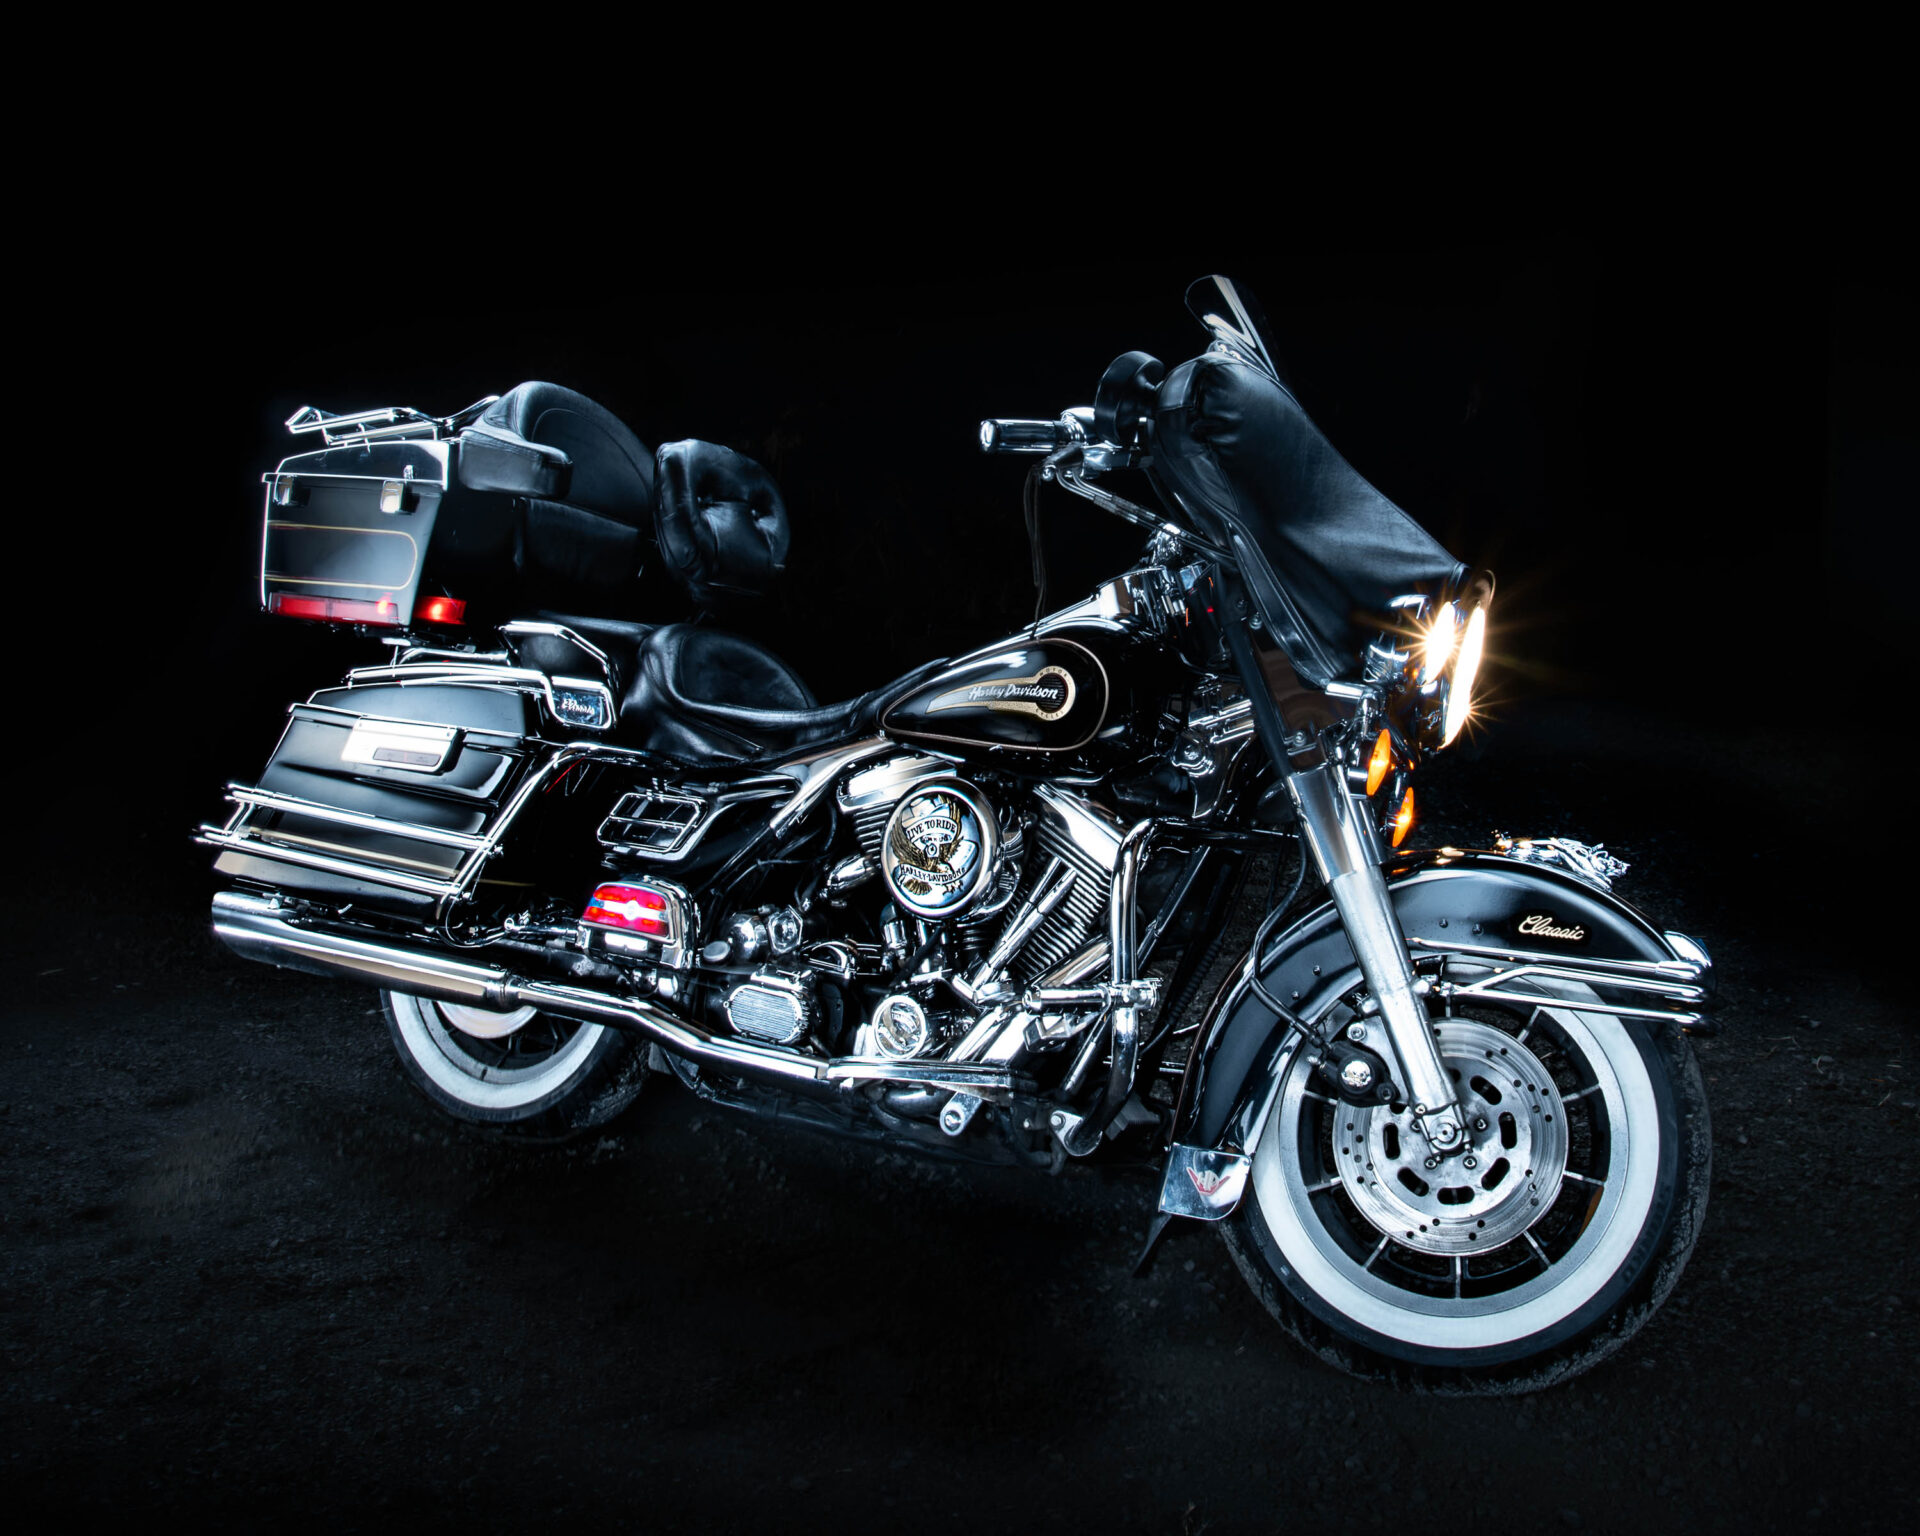 Photograph of 1996 Harley Davidson Electric Glide Classic